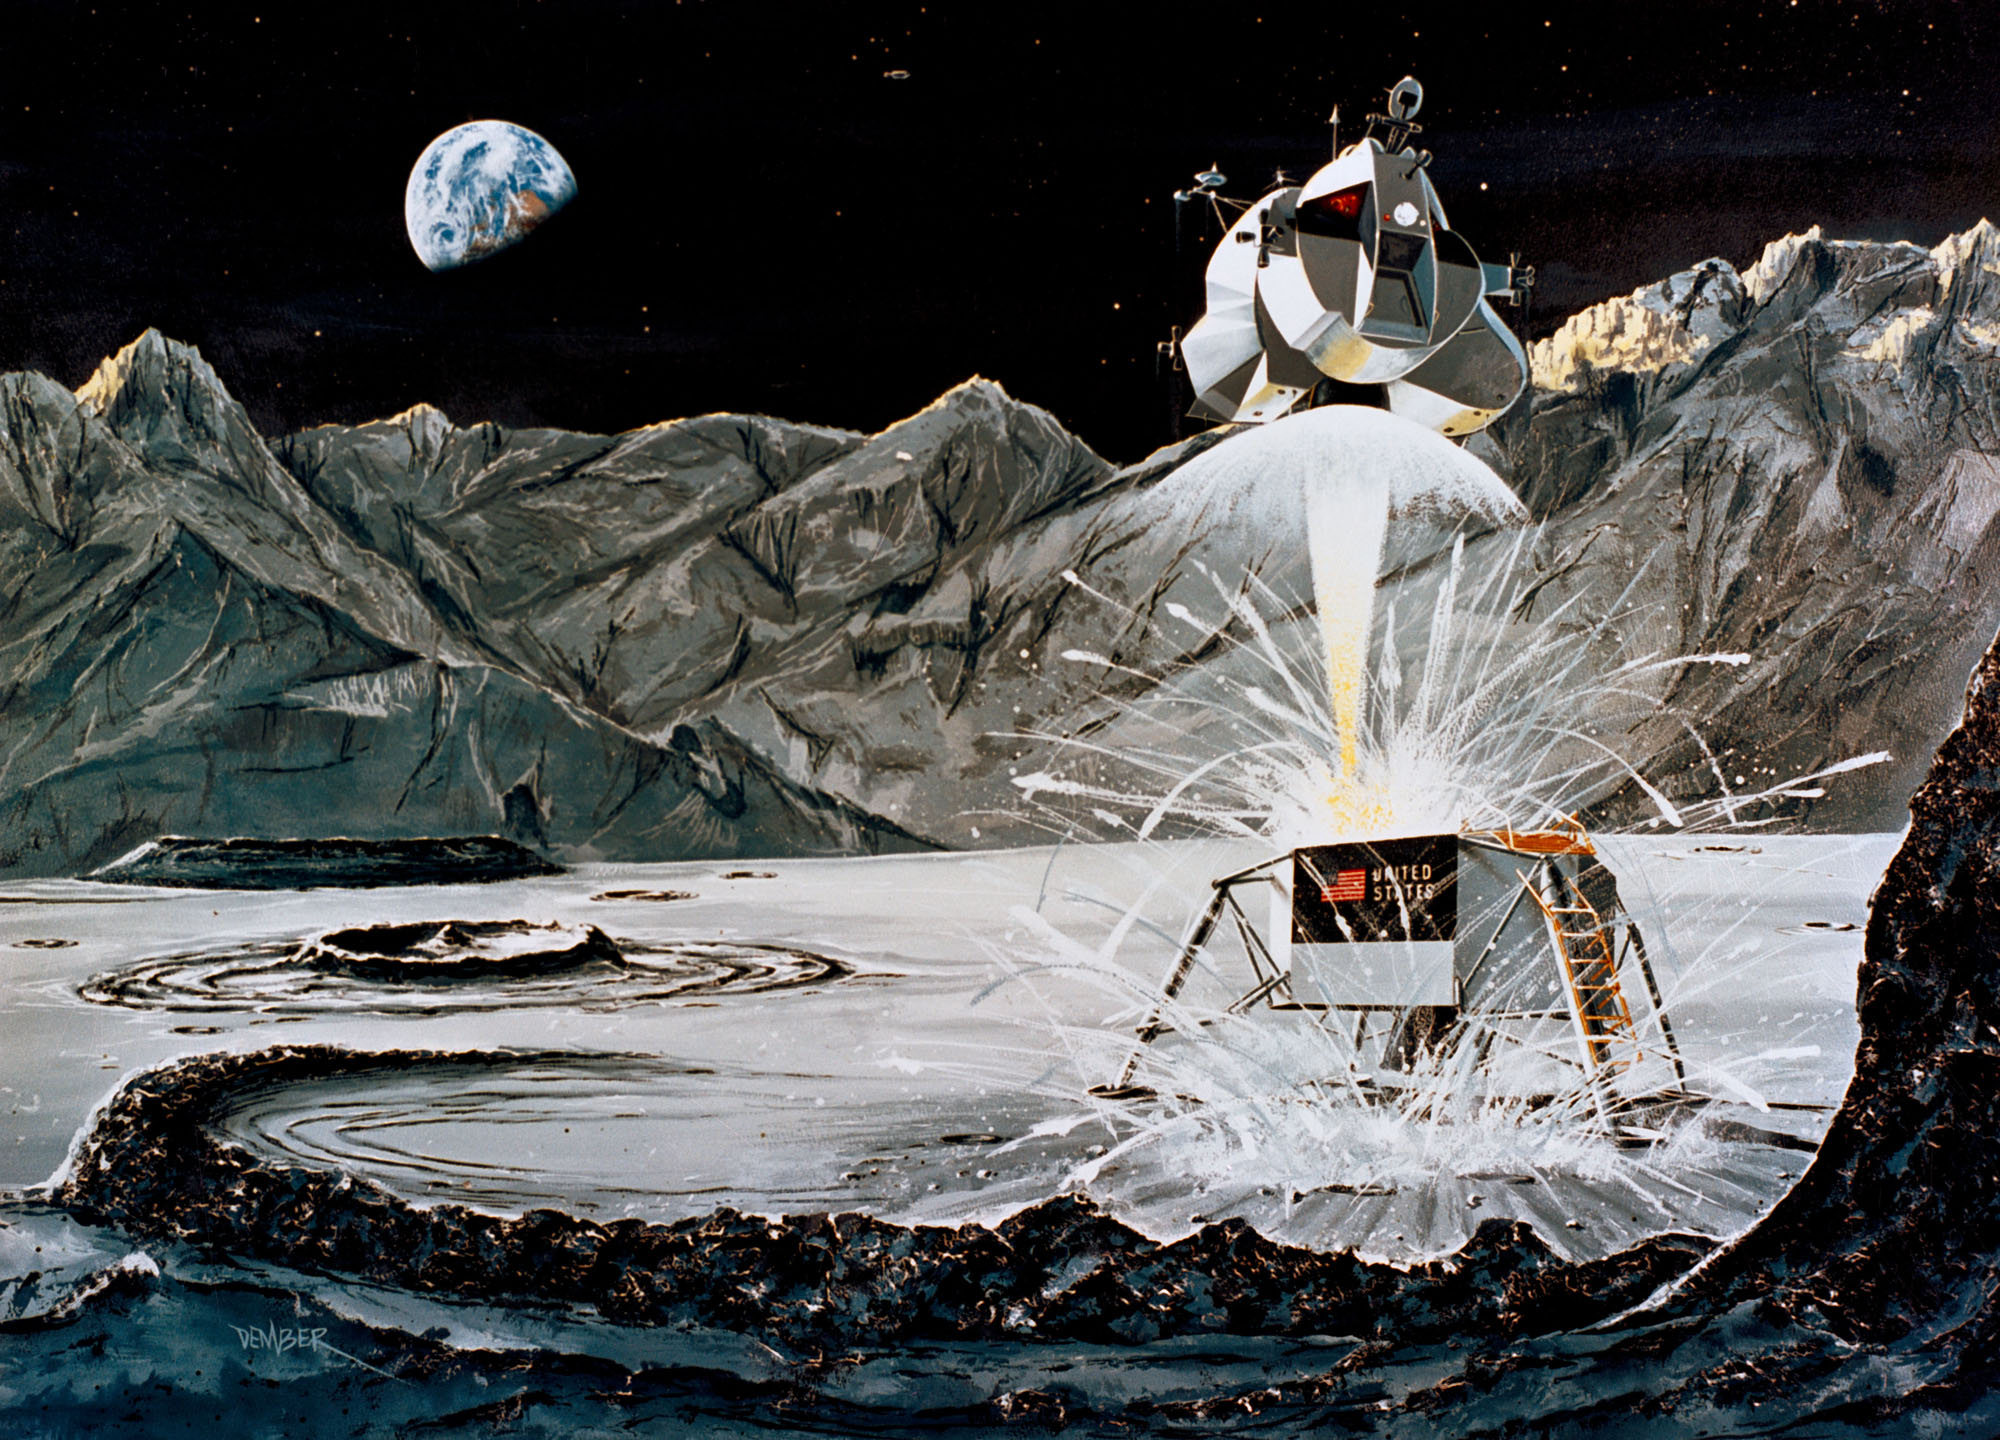 1969 Rocketdyne concept depicting the firing of the ascent engine as the Apollo 11 Lunar Module ascent stage launches from the surface of the moon. The descent stage serves as a launch base and remained on the lunar surface.Image: NASA